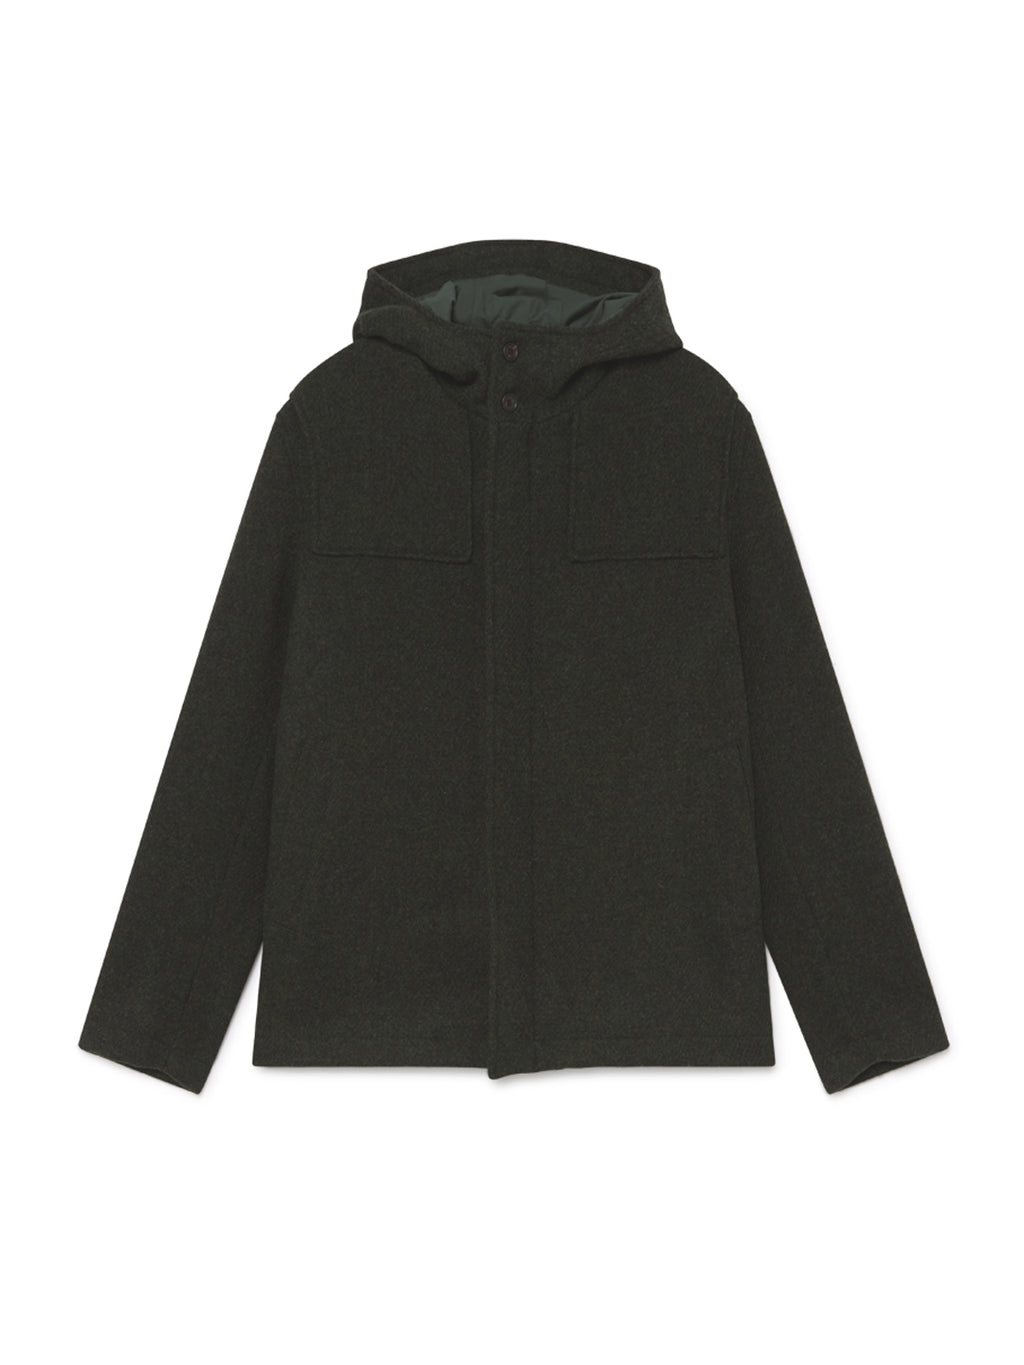 TWOTHIRDS Mens Jacket: Miquelon - Dark Green front